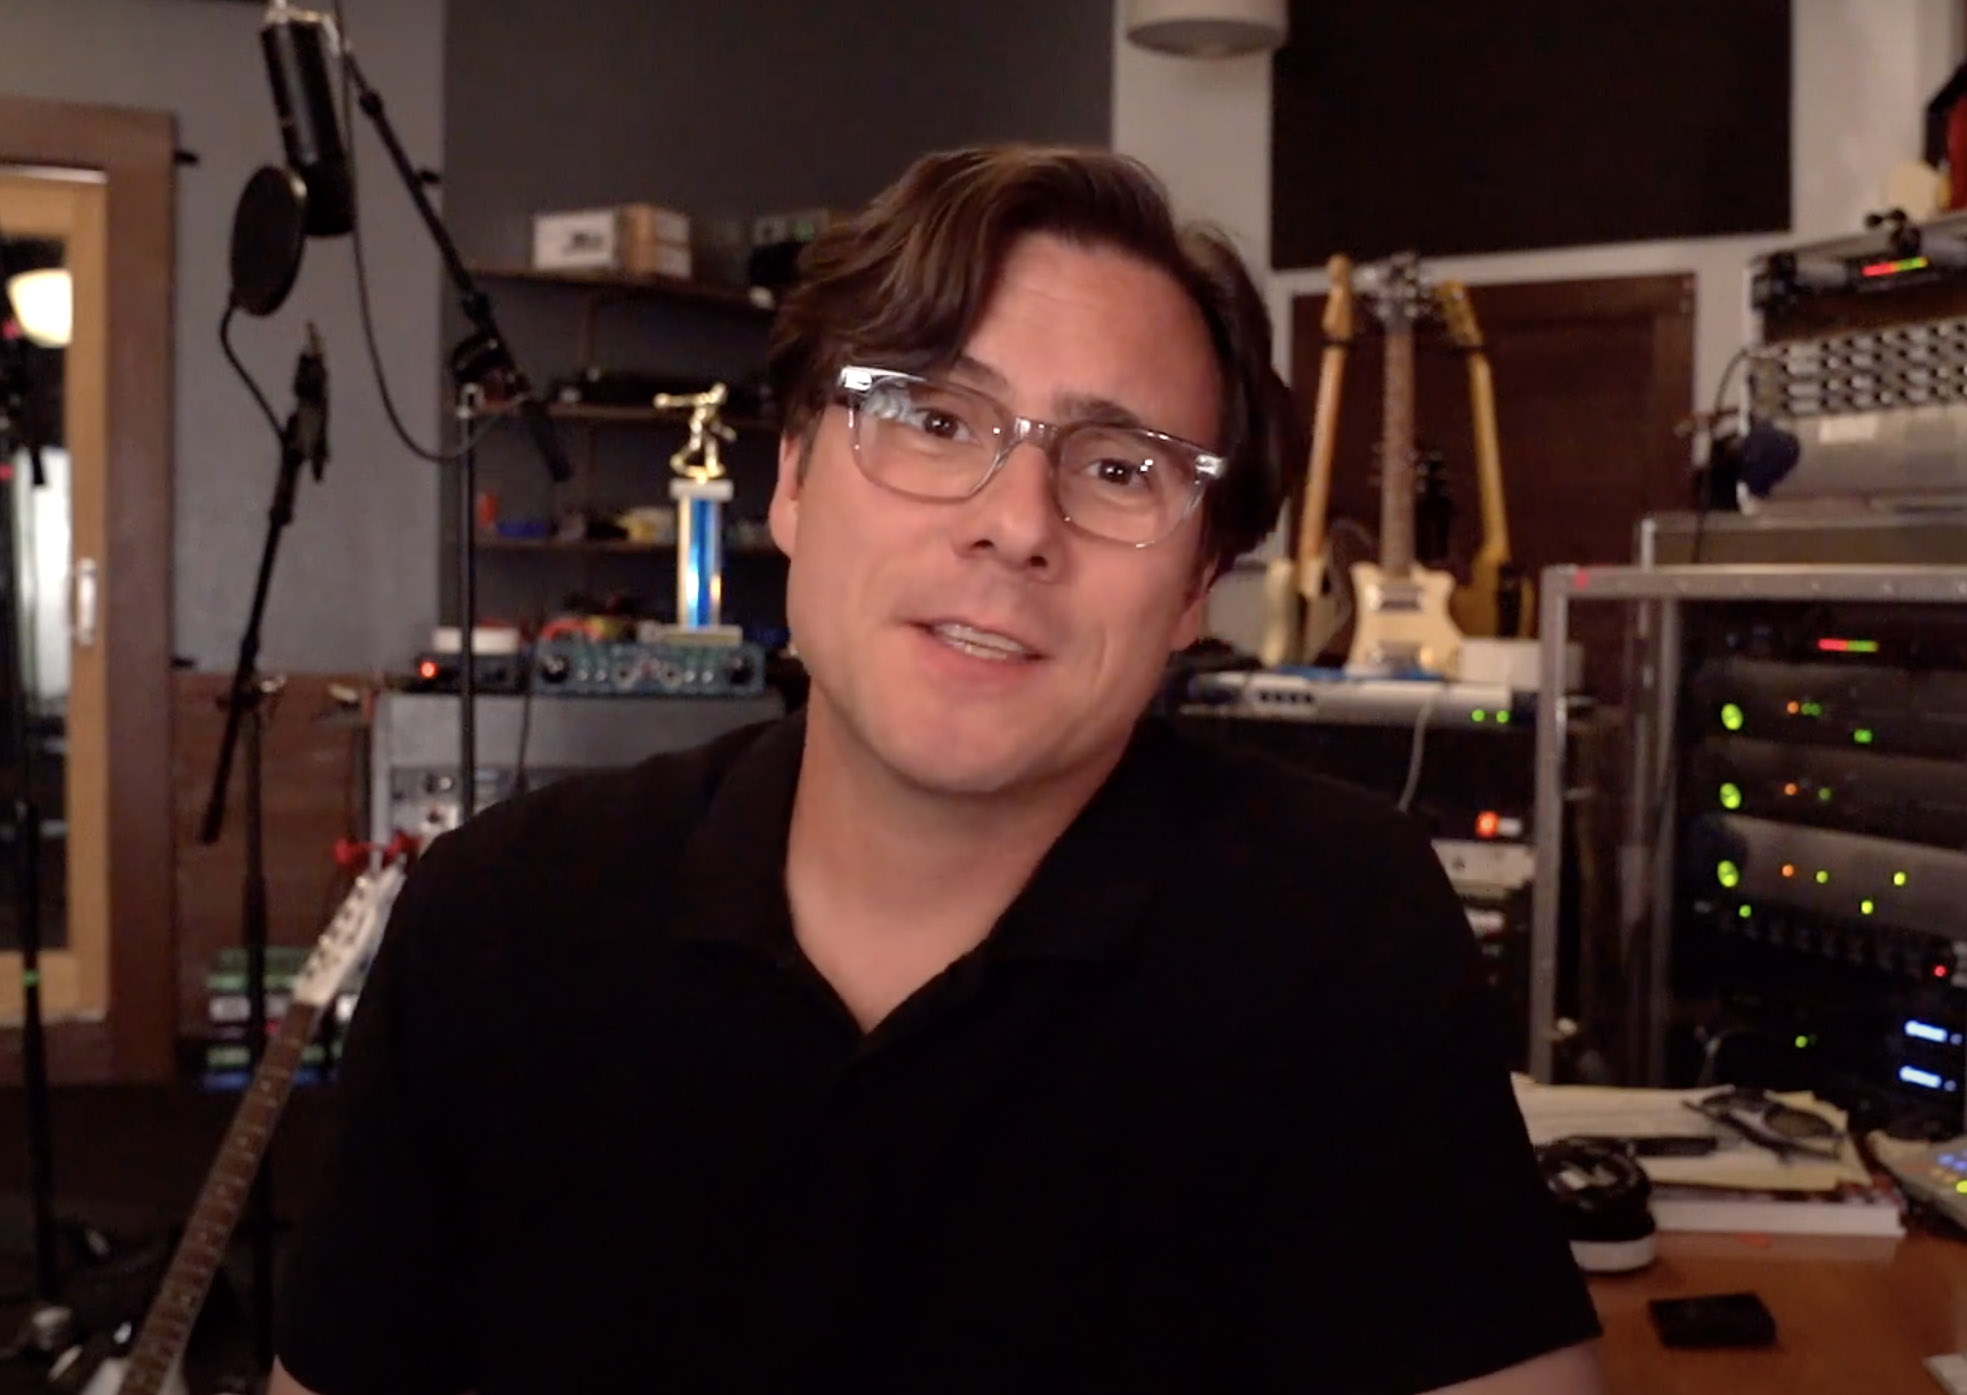 Jimmy Eat World Frontman Launches New Podcast Feat. Mark Hoppus, Steve Aoki & More